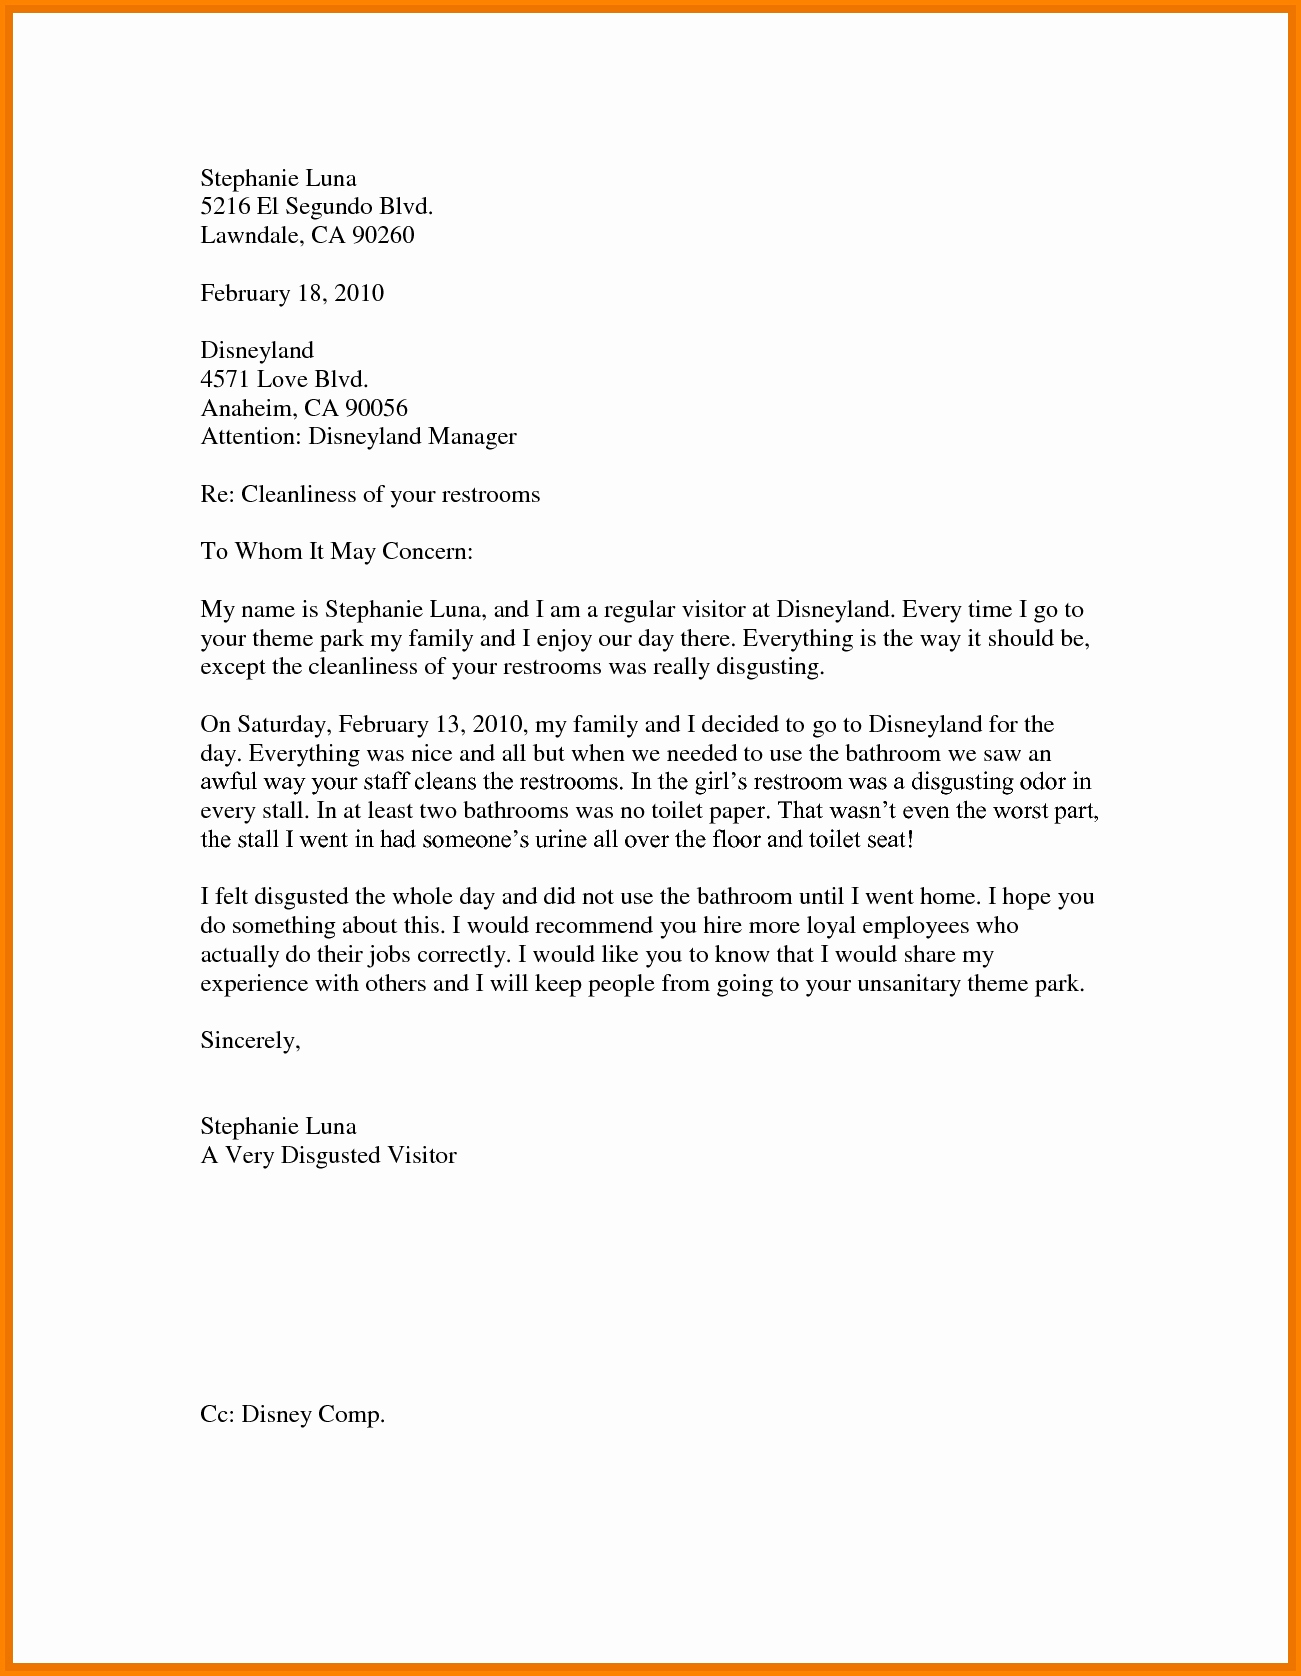 Sample Of Bussiness Letters Best Of Business Letter Sample for Students